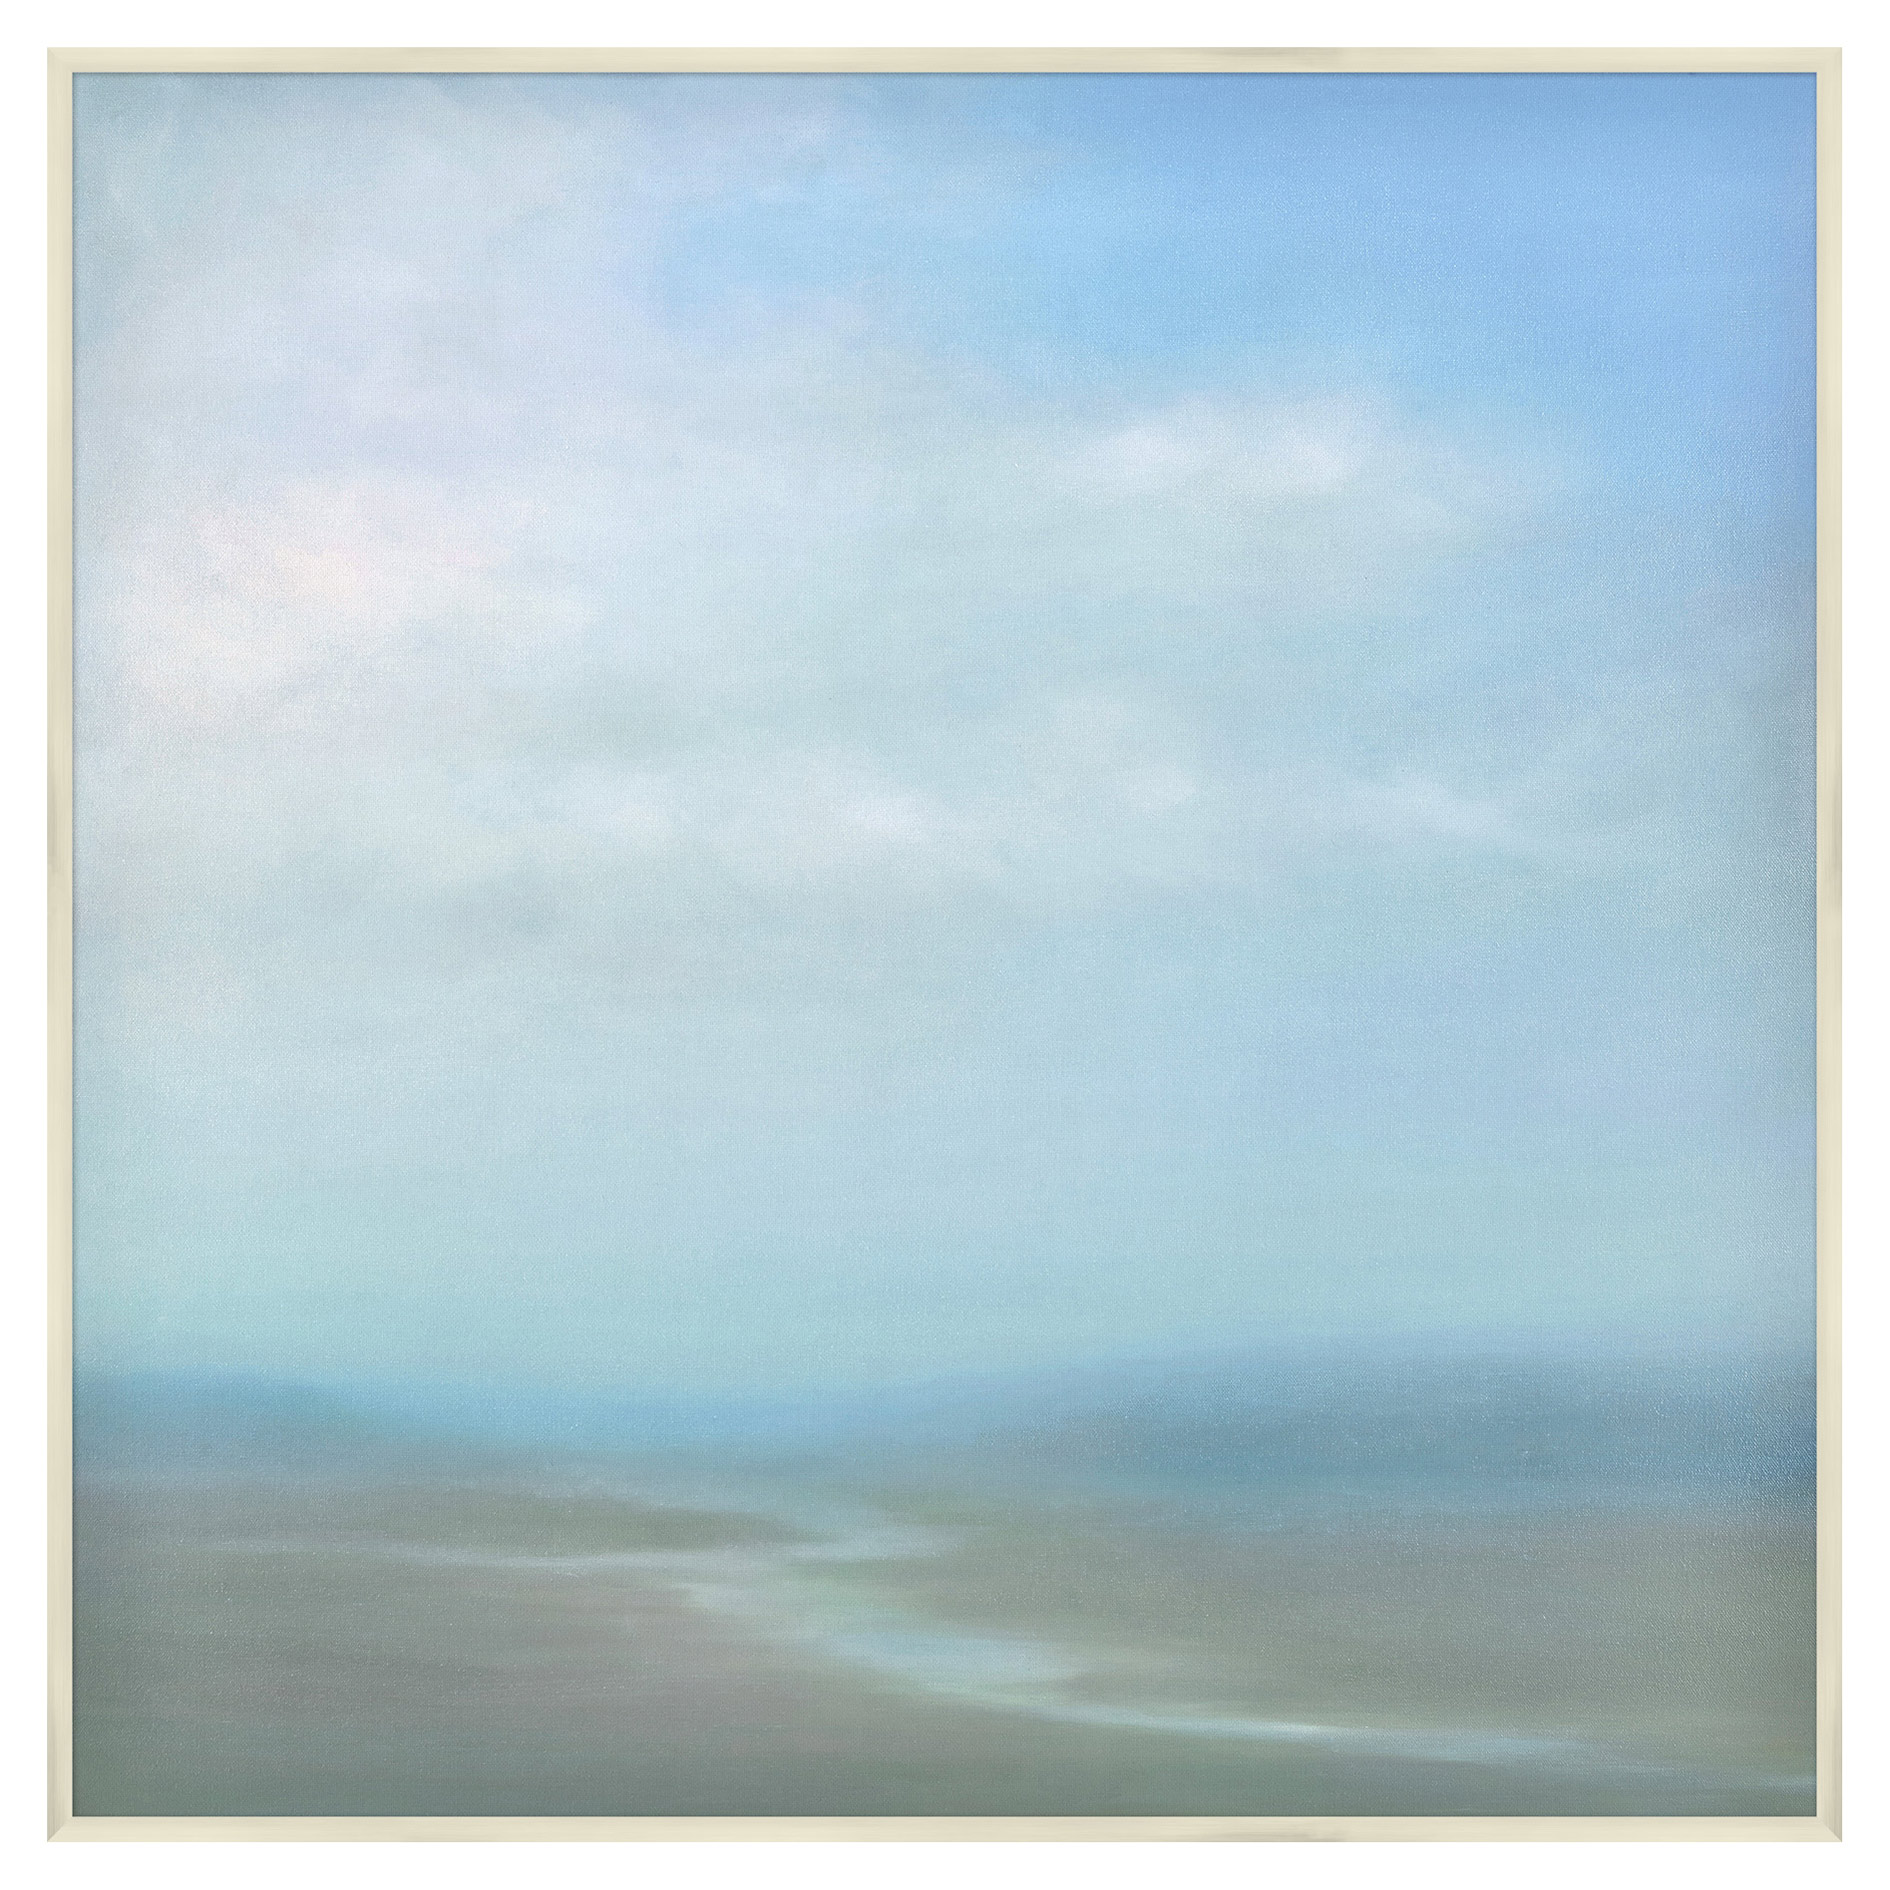 River Run Abstract Sky Blue Giclee Canvas Painting